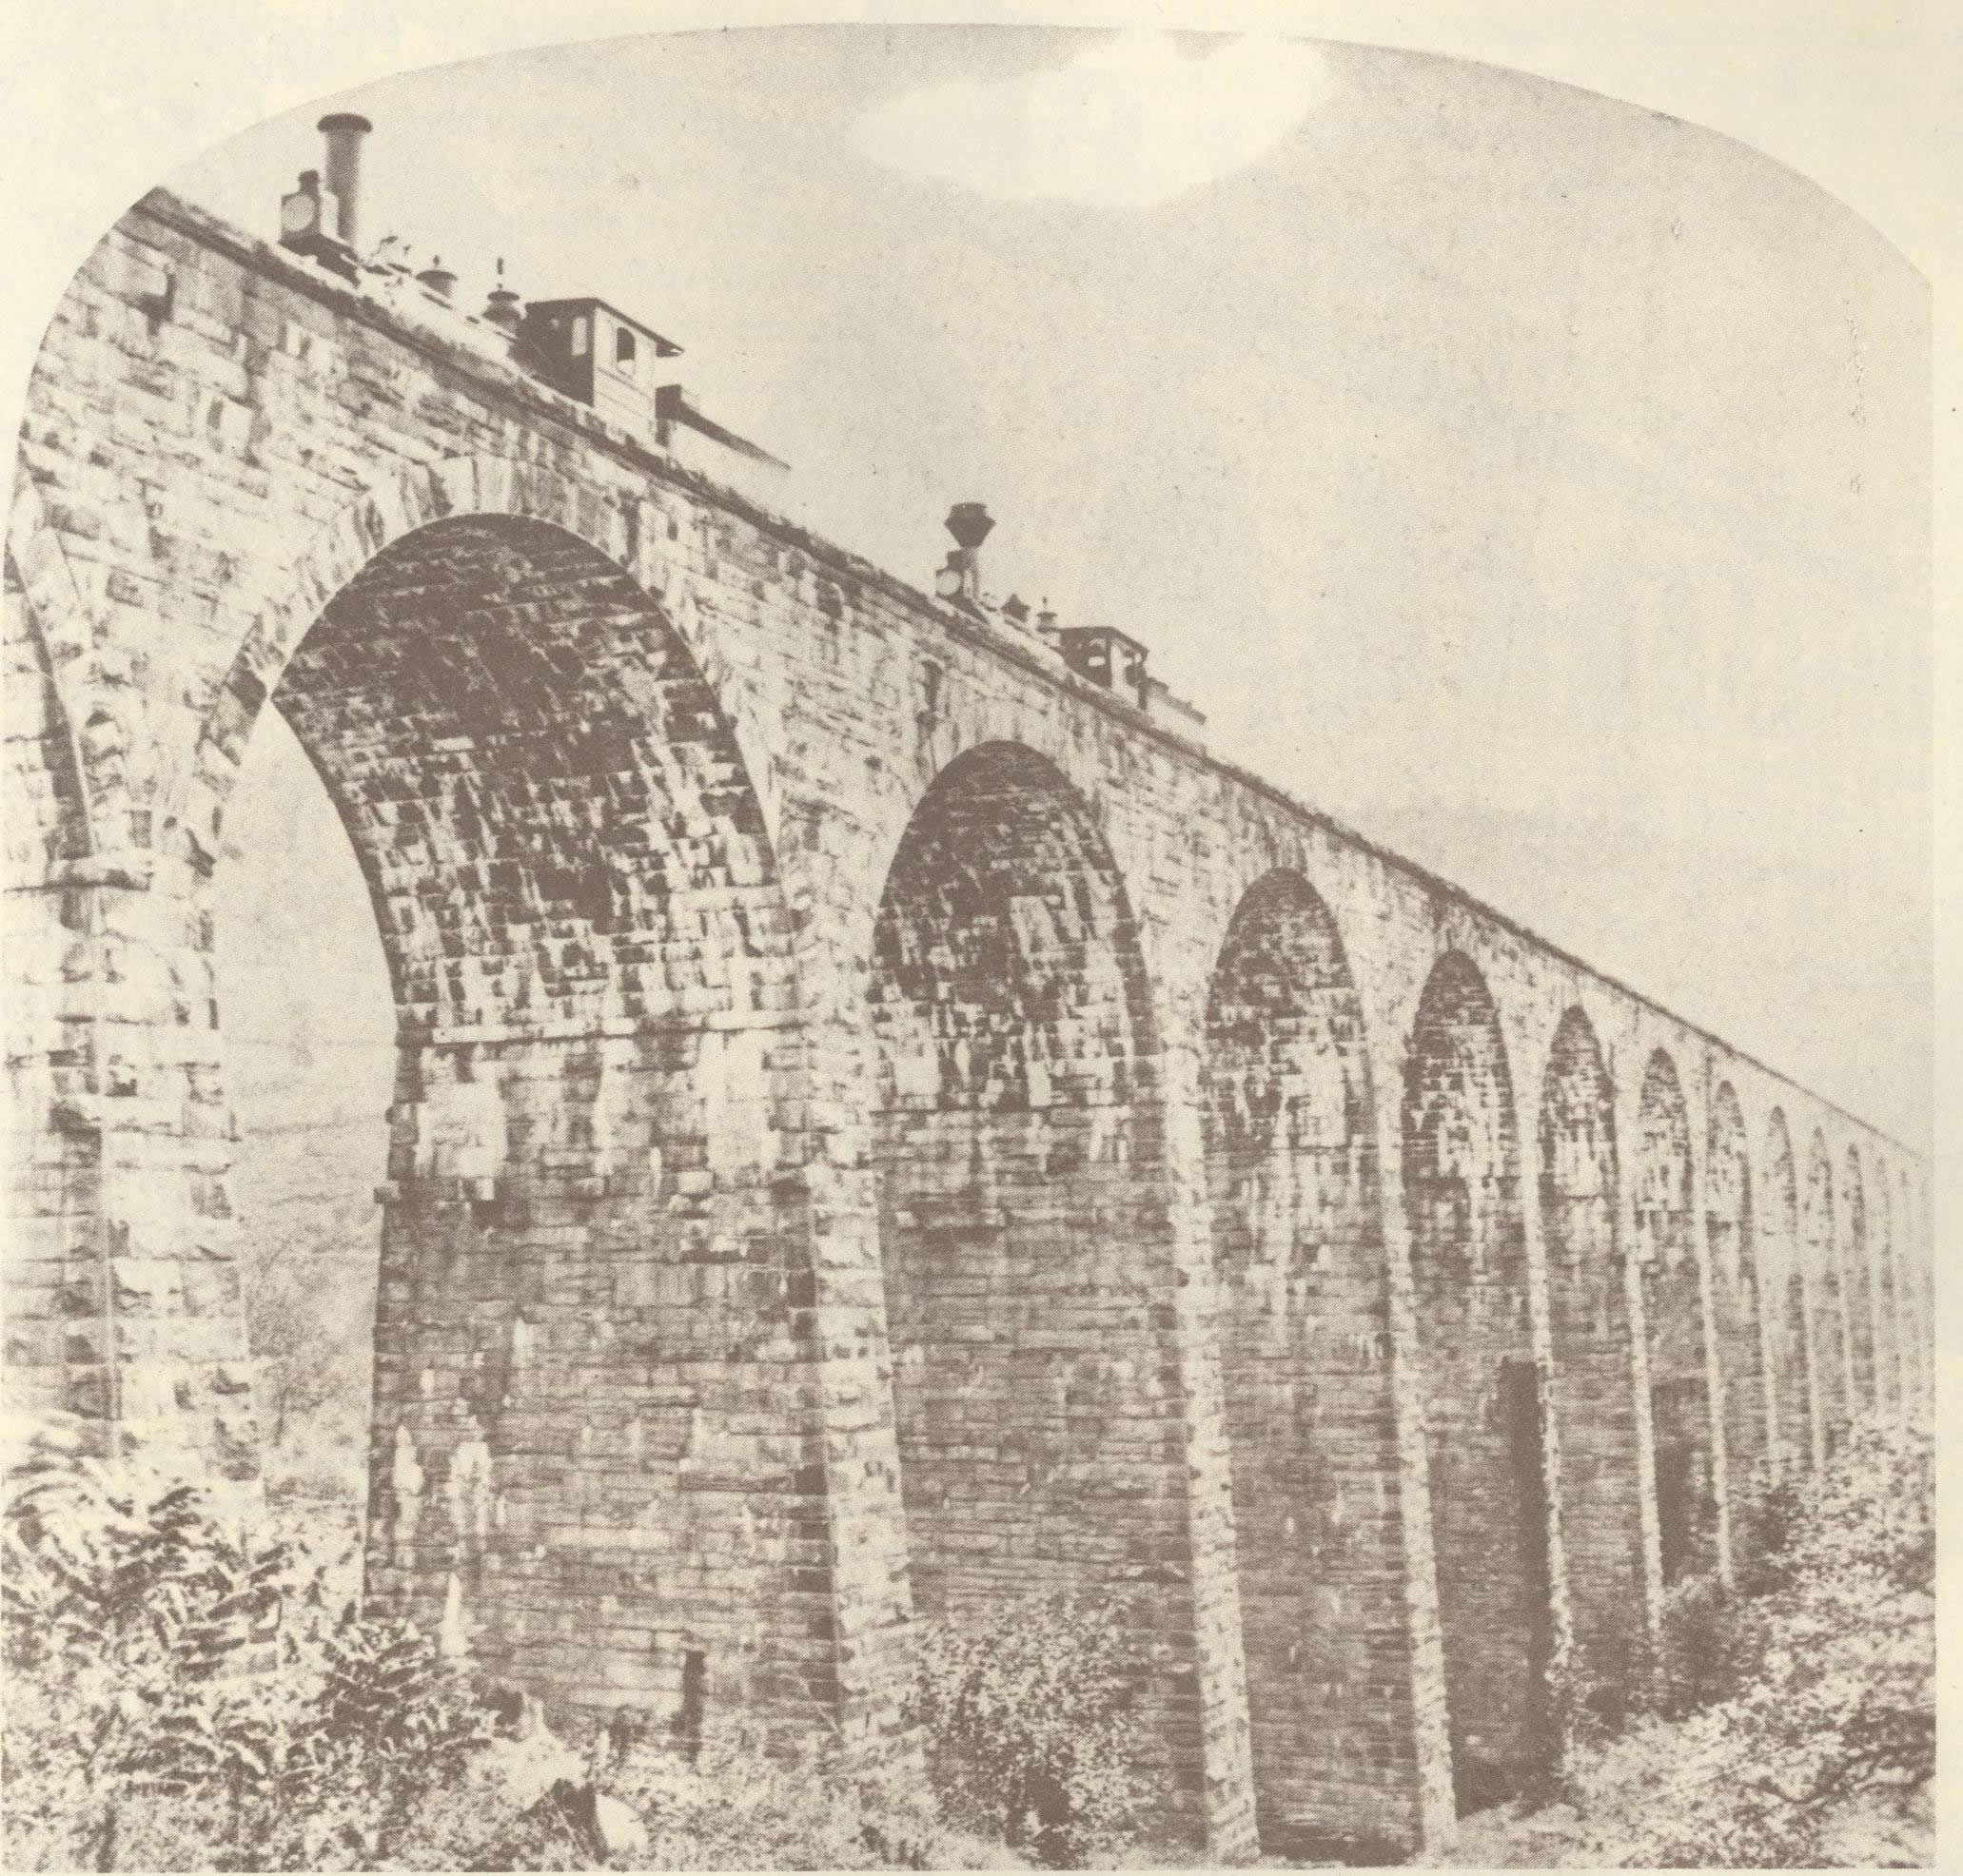 Two trains on the Viaduct